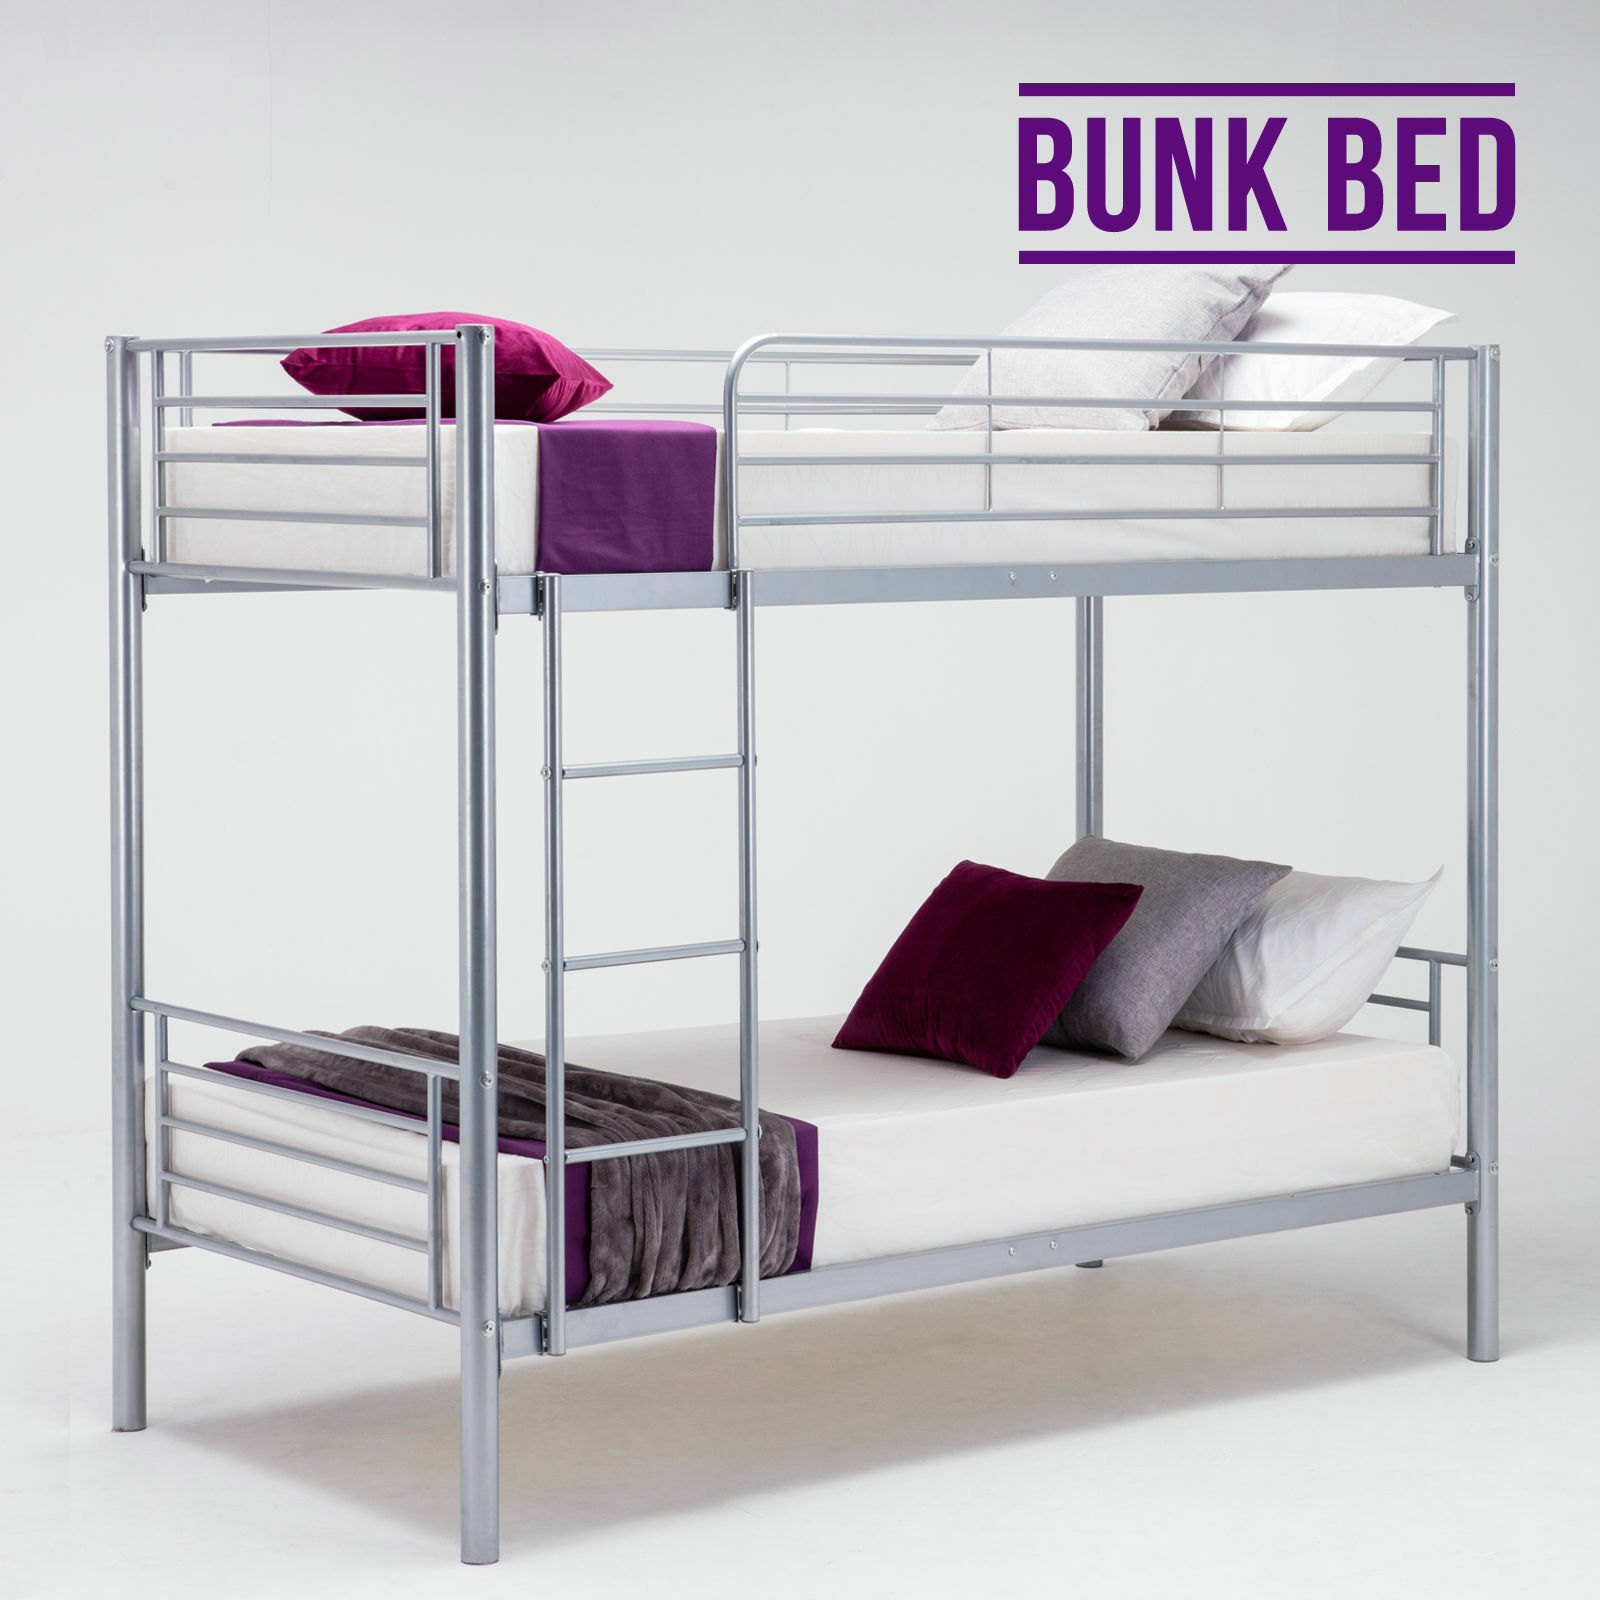 Modern 2x3ft single silver metal bunk bed frame for adult for Modern bunk beds for kids